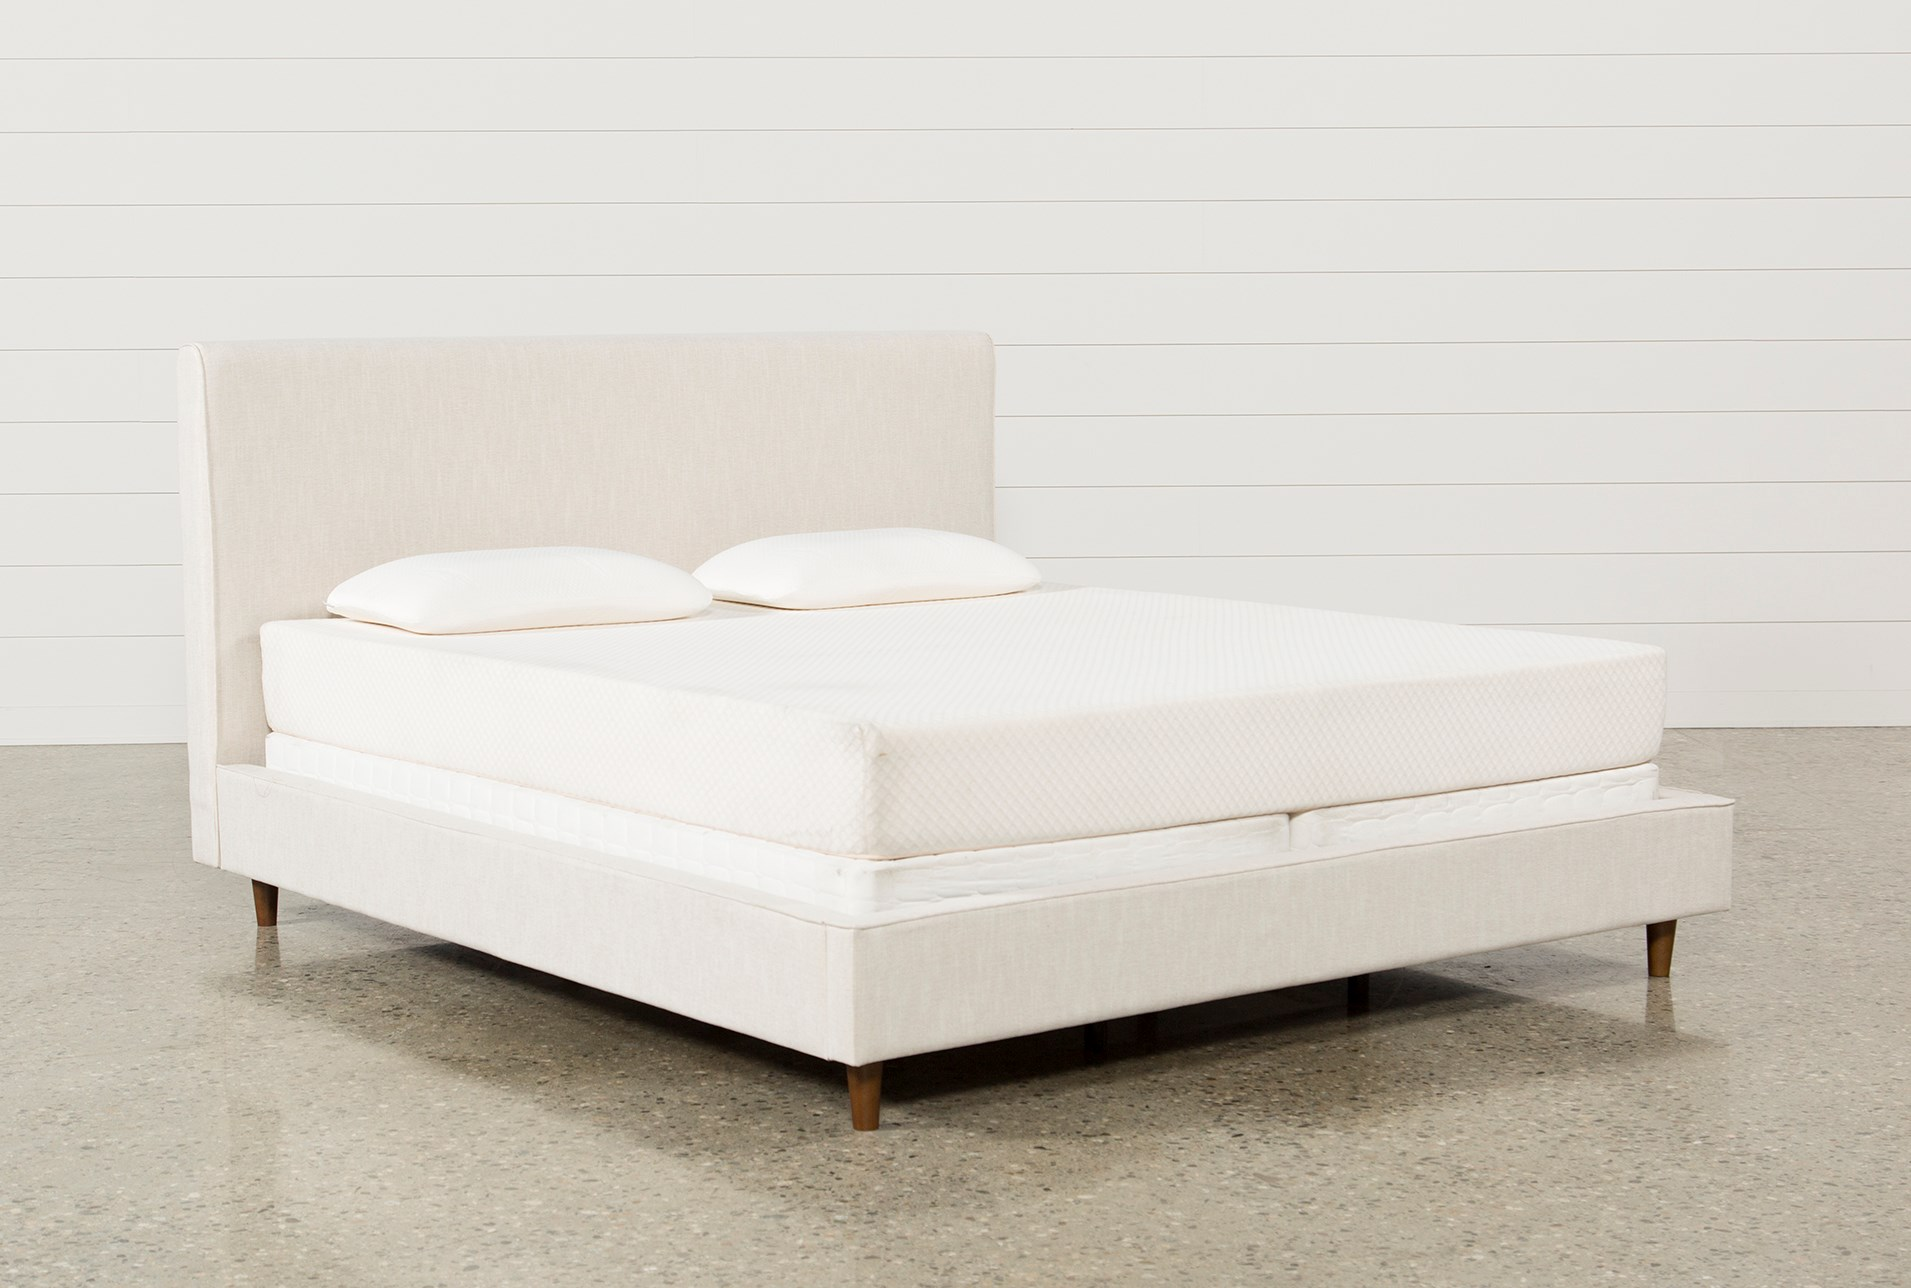 Dean Sand Eastern King Upholstered Panel Bed Qty 1 Has Been Successfully Added To Your Cart